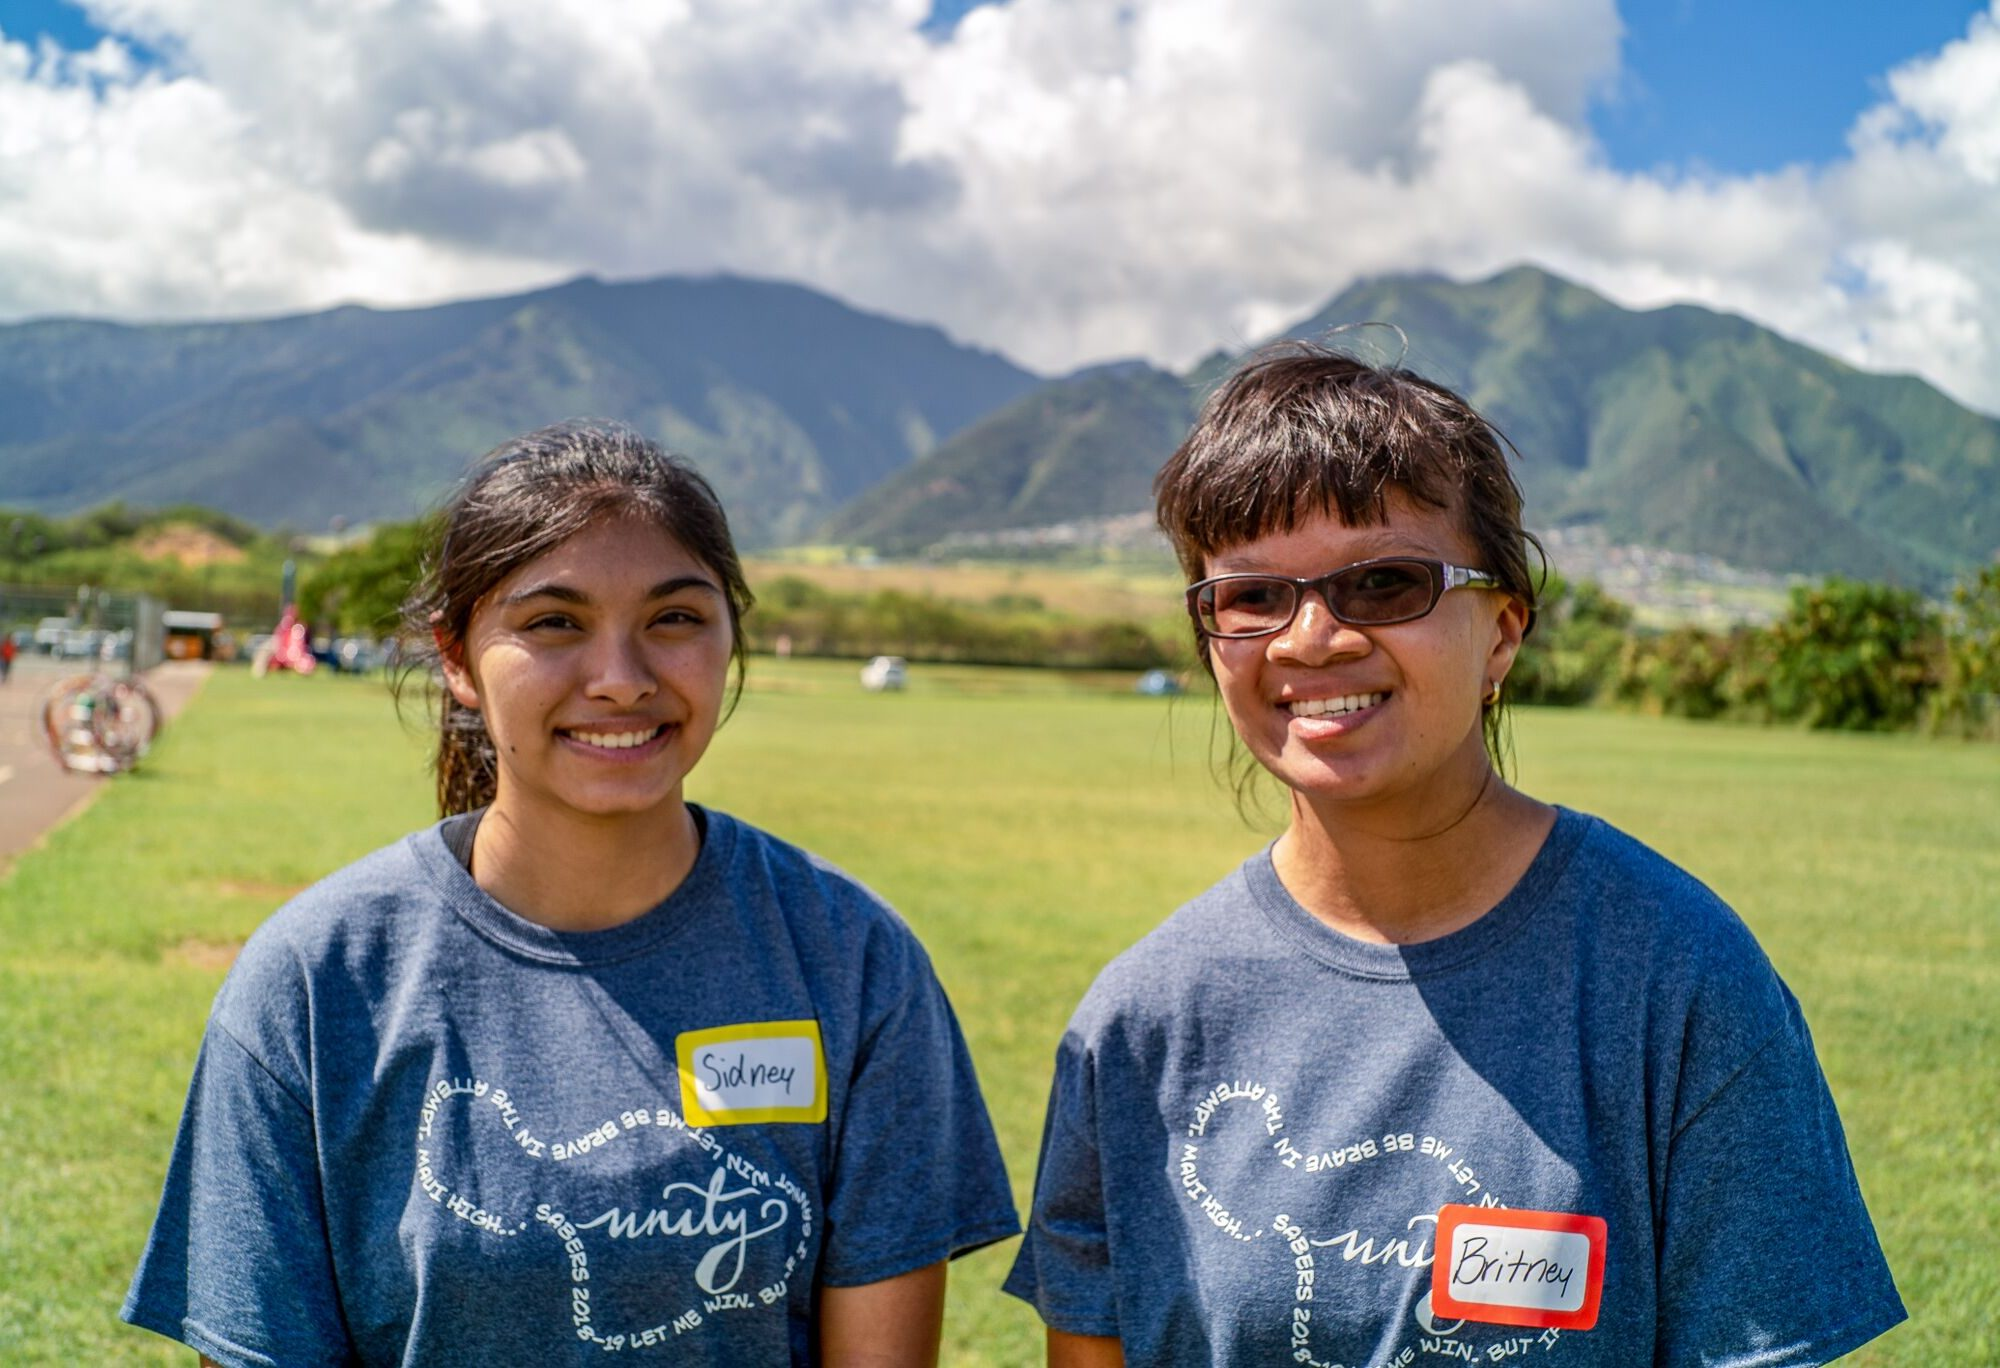 Two young women smiling at the camera with mountains and green grass in the background.